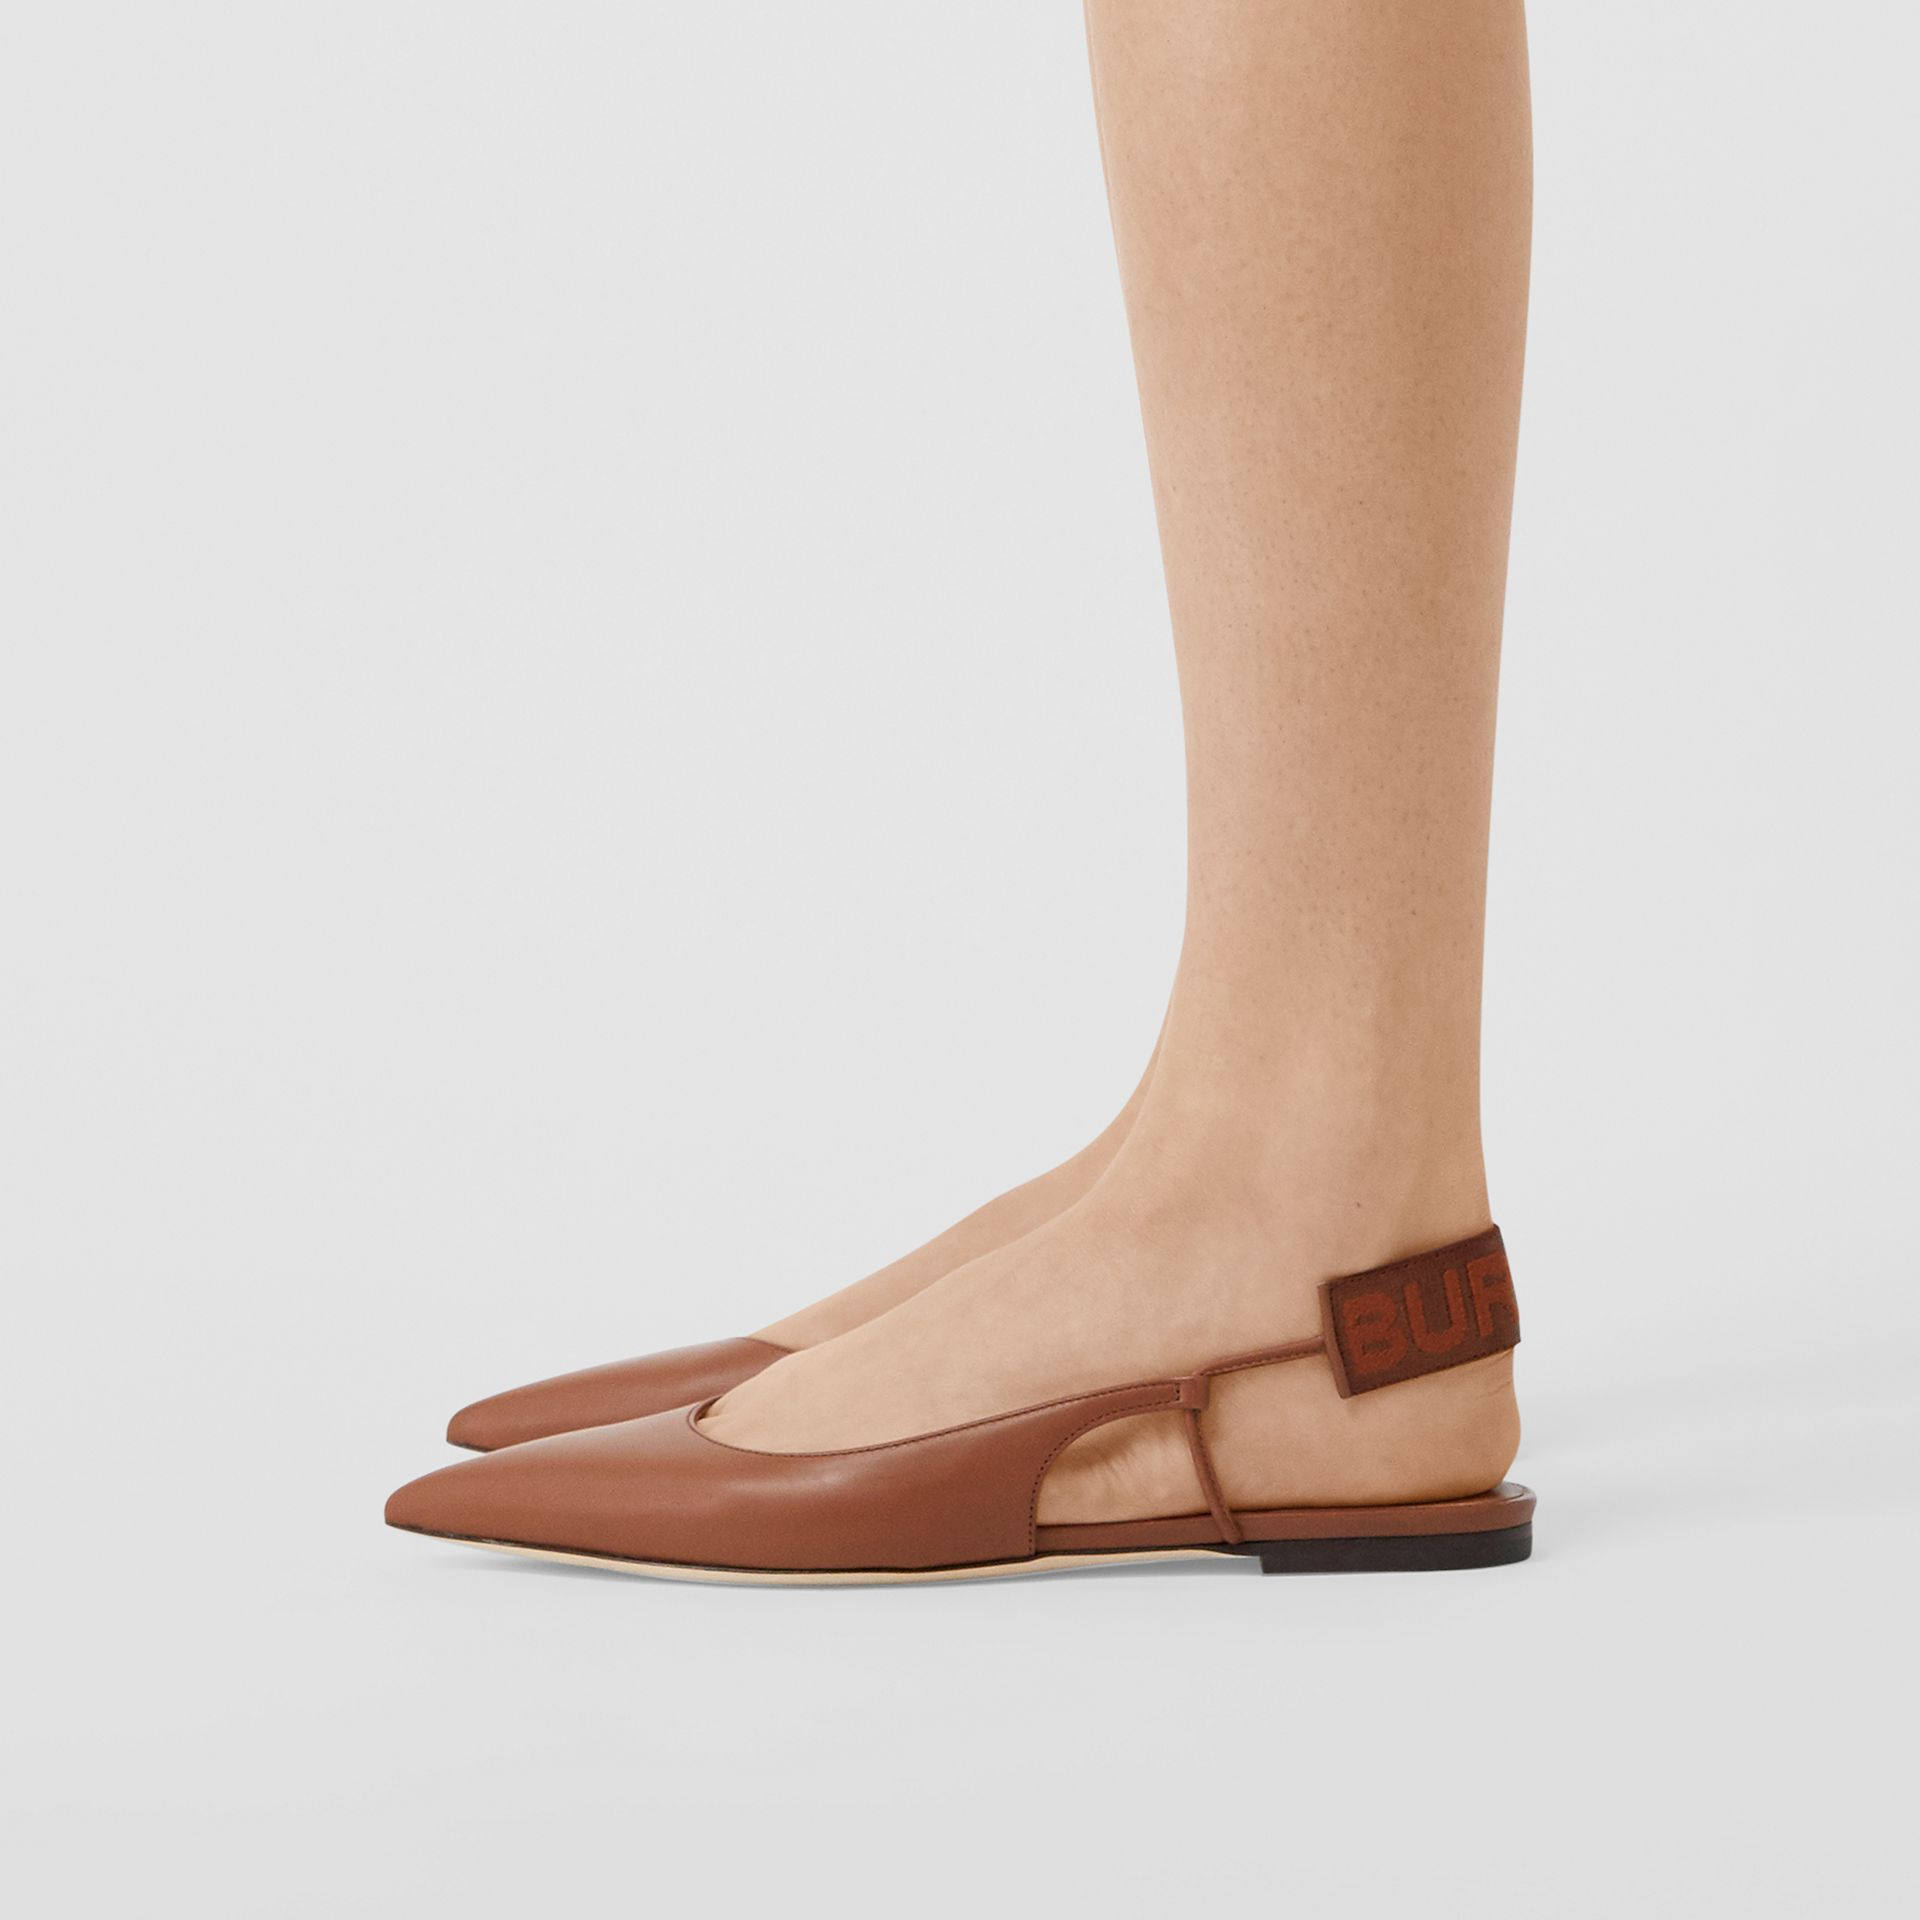 Logo Detail Leather Slingback Flats in Tan - Women | Burberry Singapore - gallery image 2